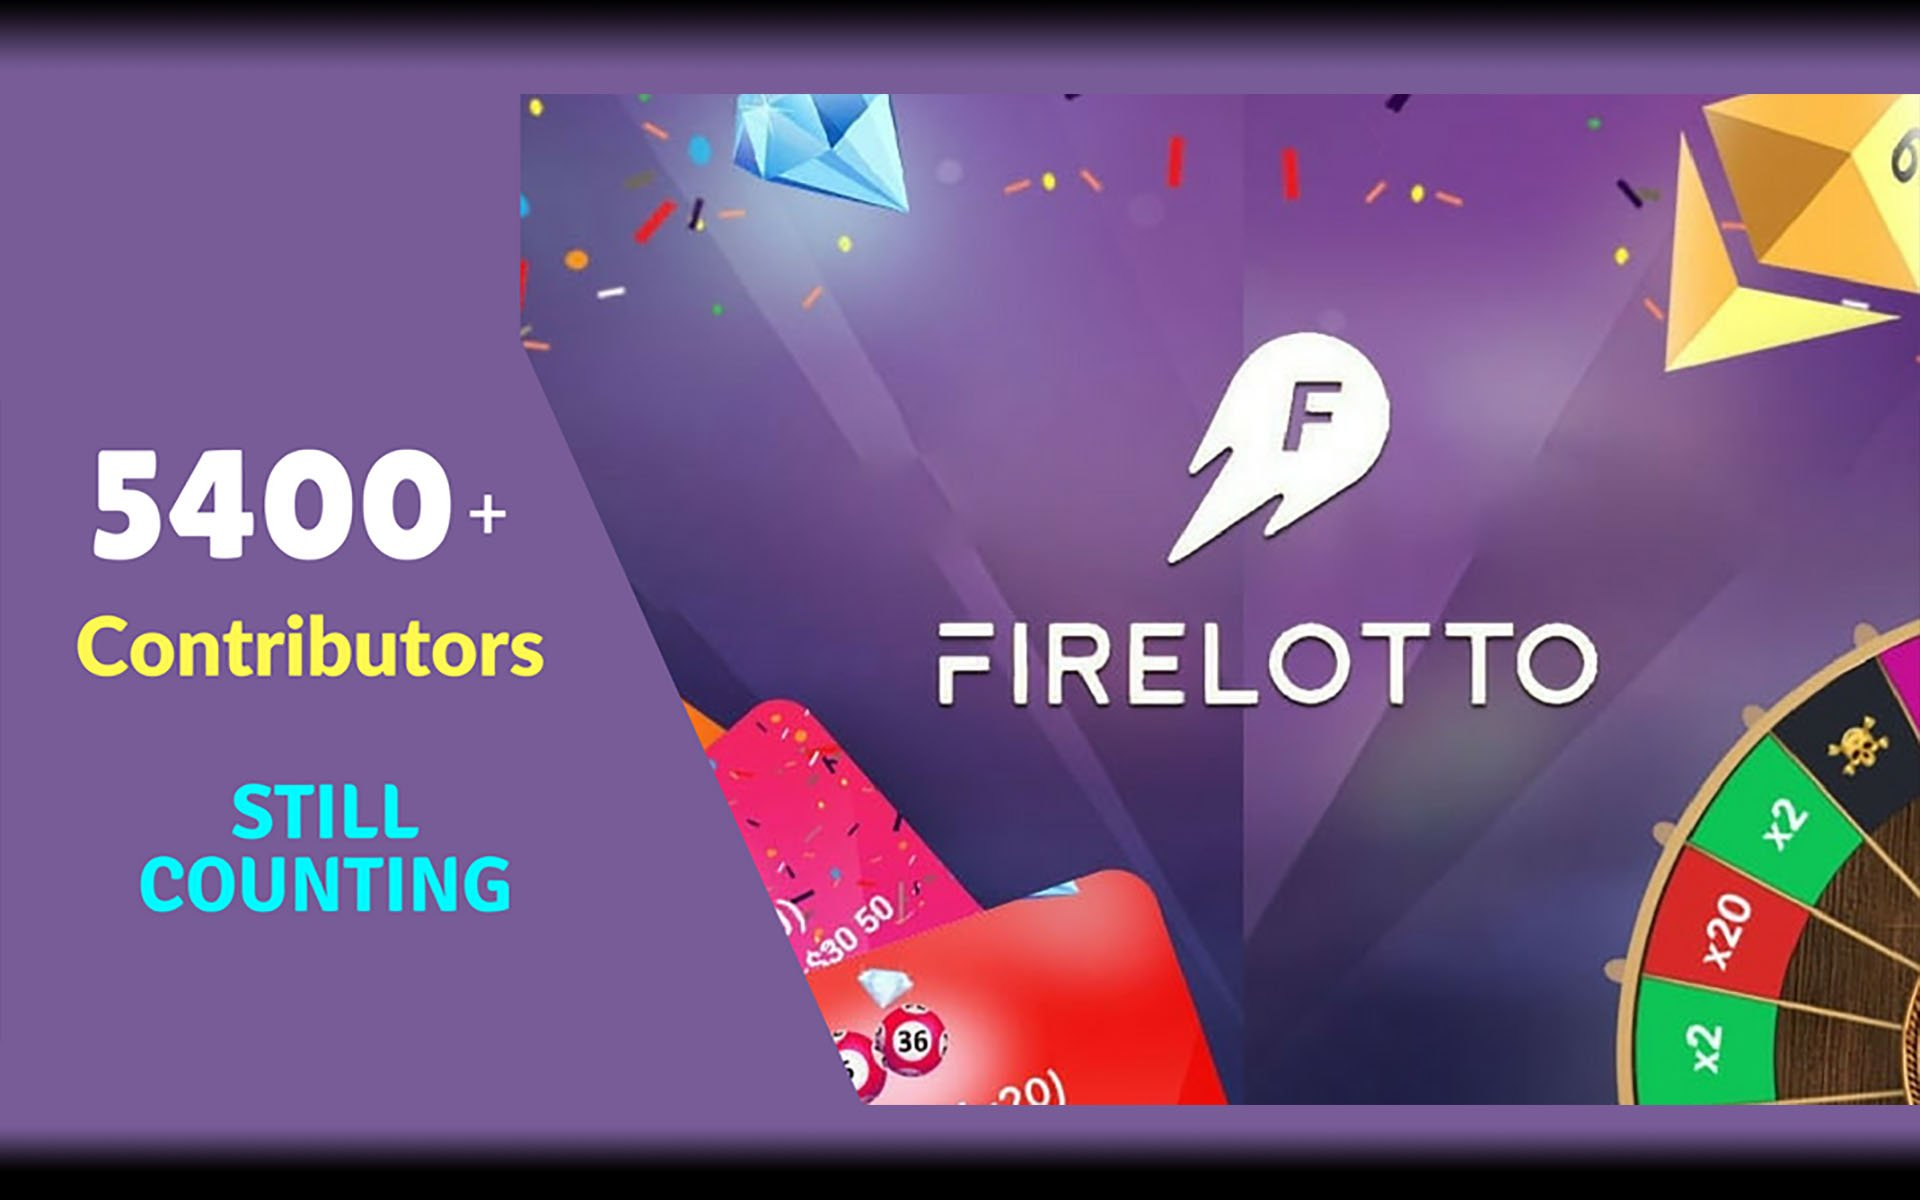 FireLotto Crypto Lottery ICO Is In Full Swing With 5400+ Contributors